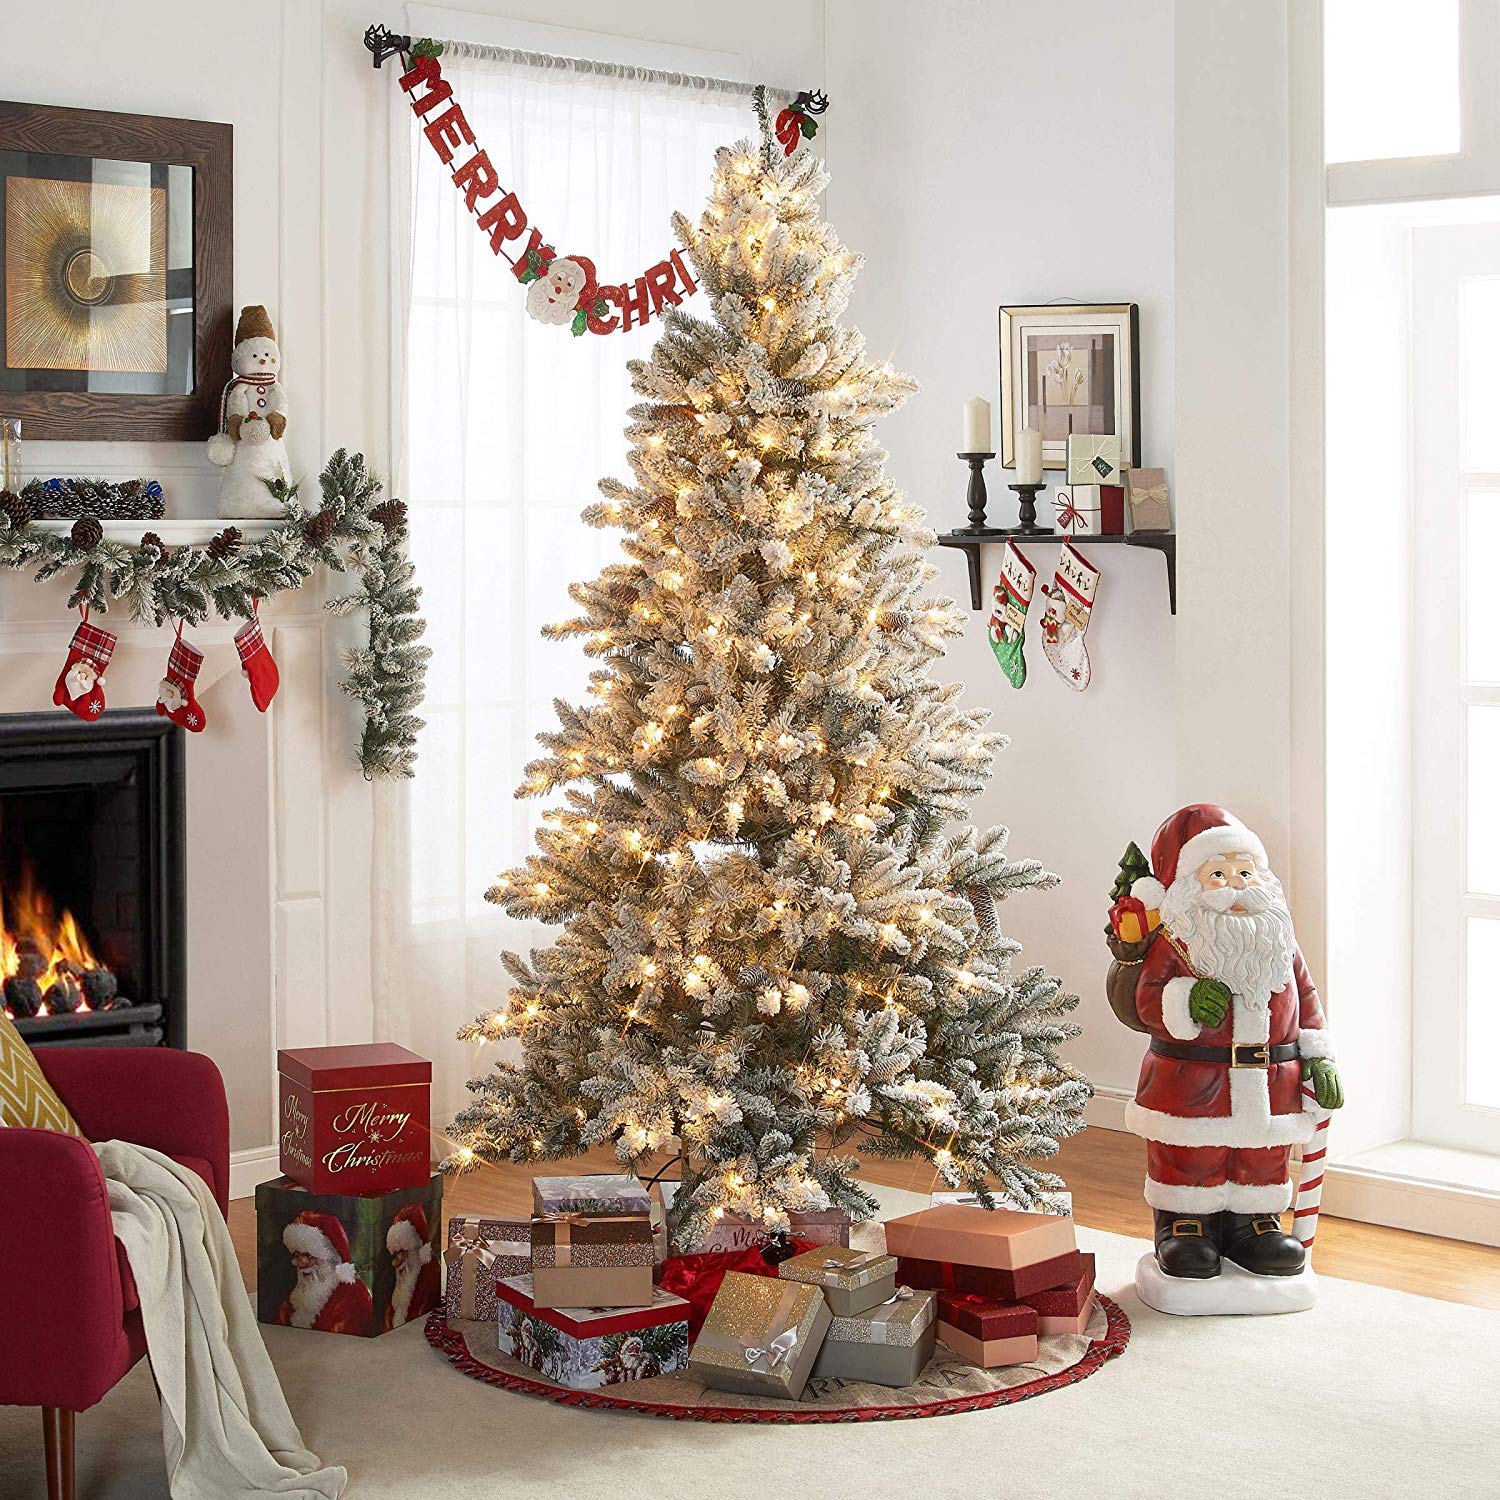 Beautiful Festive Cheery Easy Care and Store Sturdy 7.5 ft. Pre-Lit Flocked Birmingham Fir Tree 400 Clear Lights and Metal Stand - Bring The Magic of Christmas Home